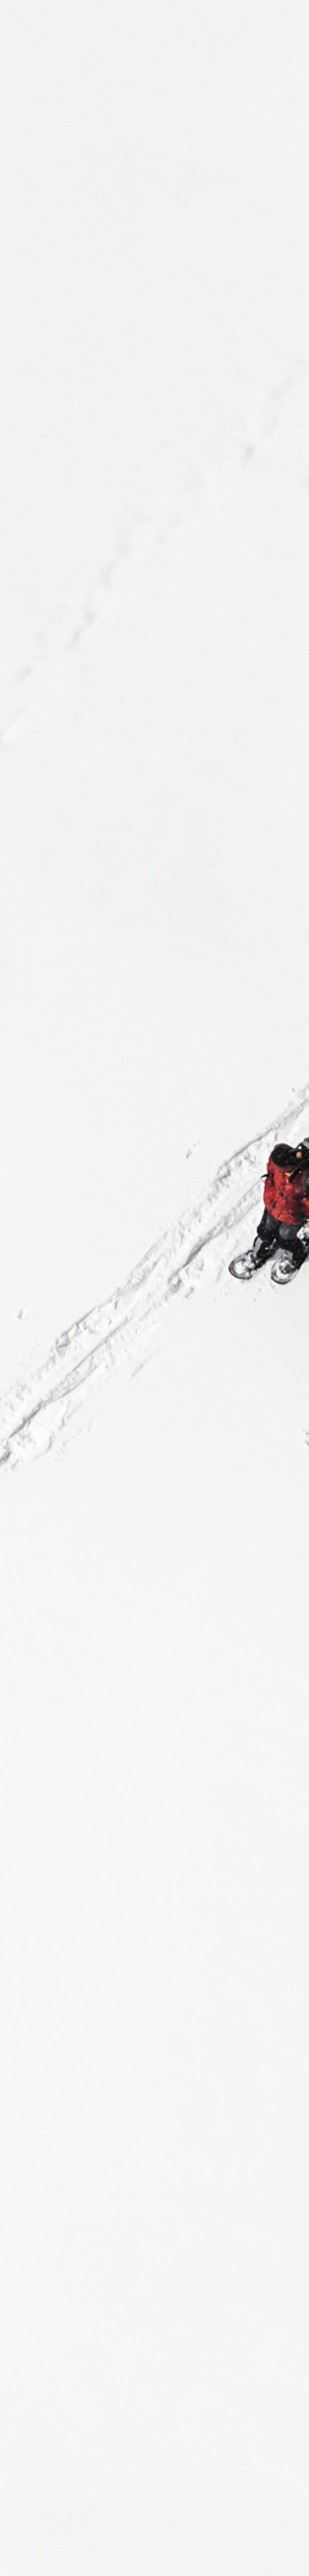 Aerial view of two hikers in the snow - Klaus Leidorf Aerial Photography